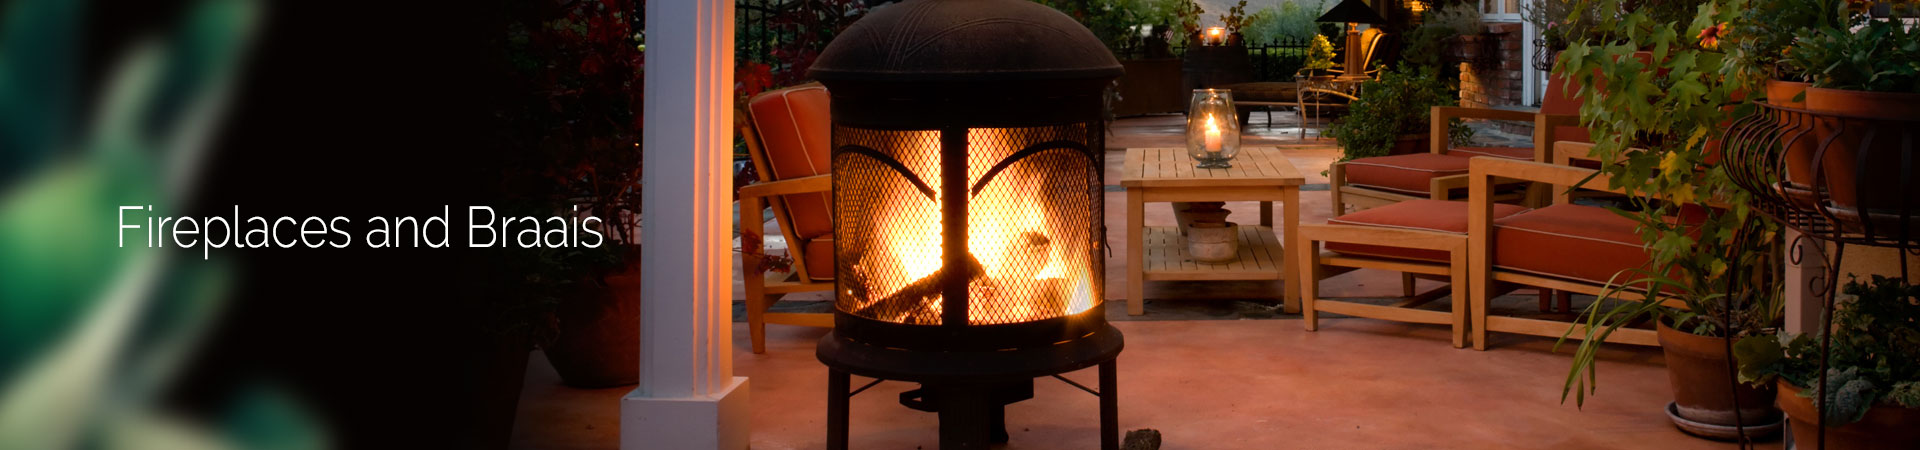 fireplaces and braais